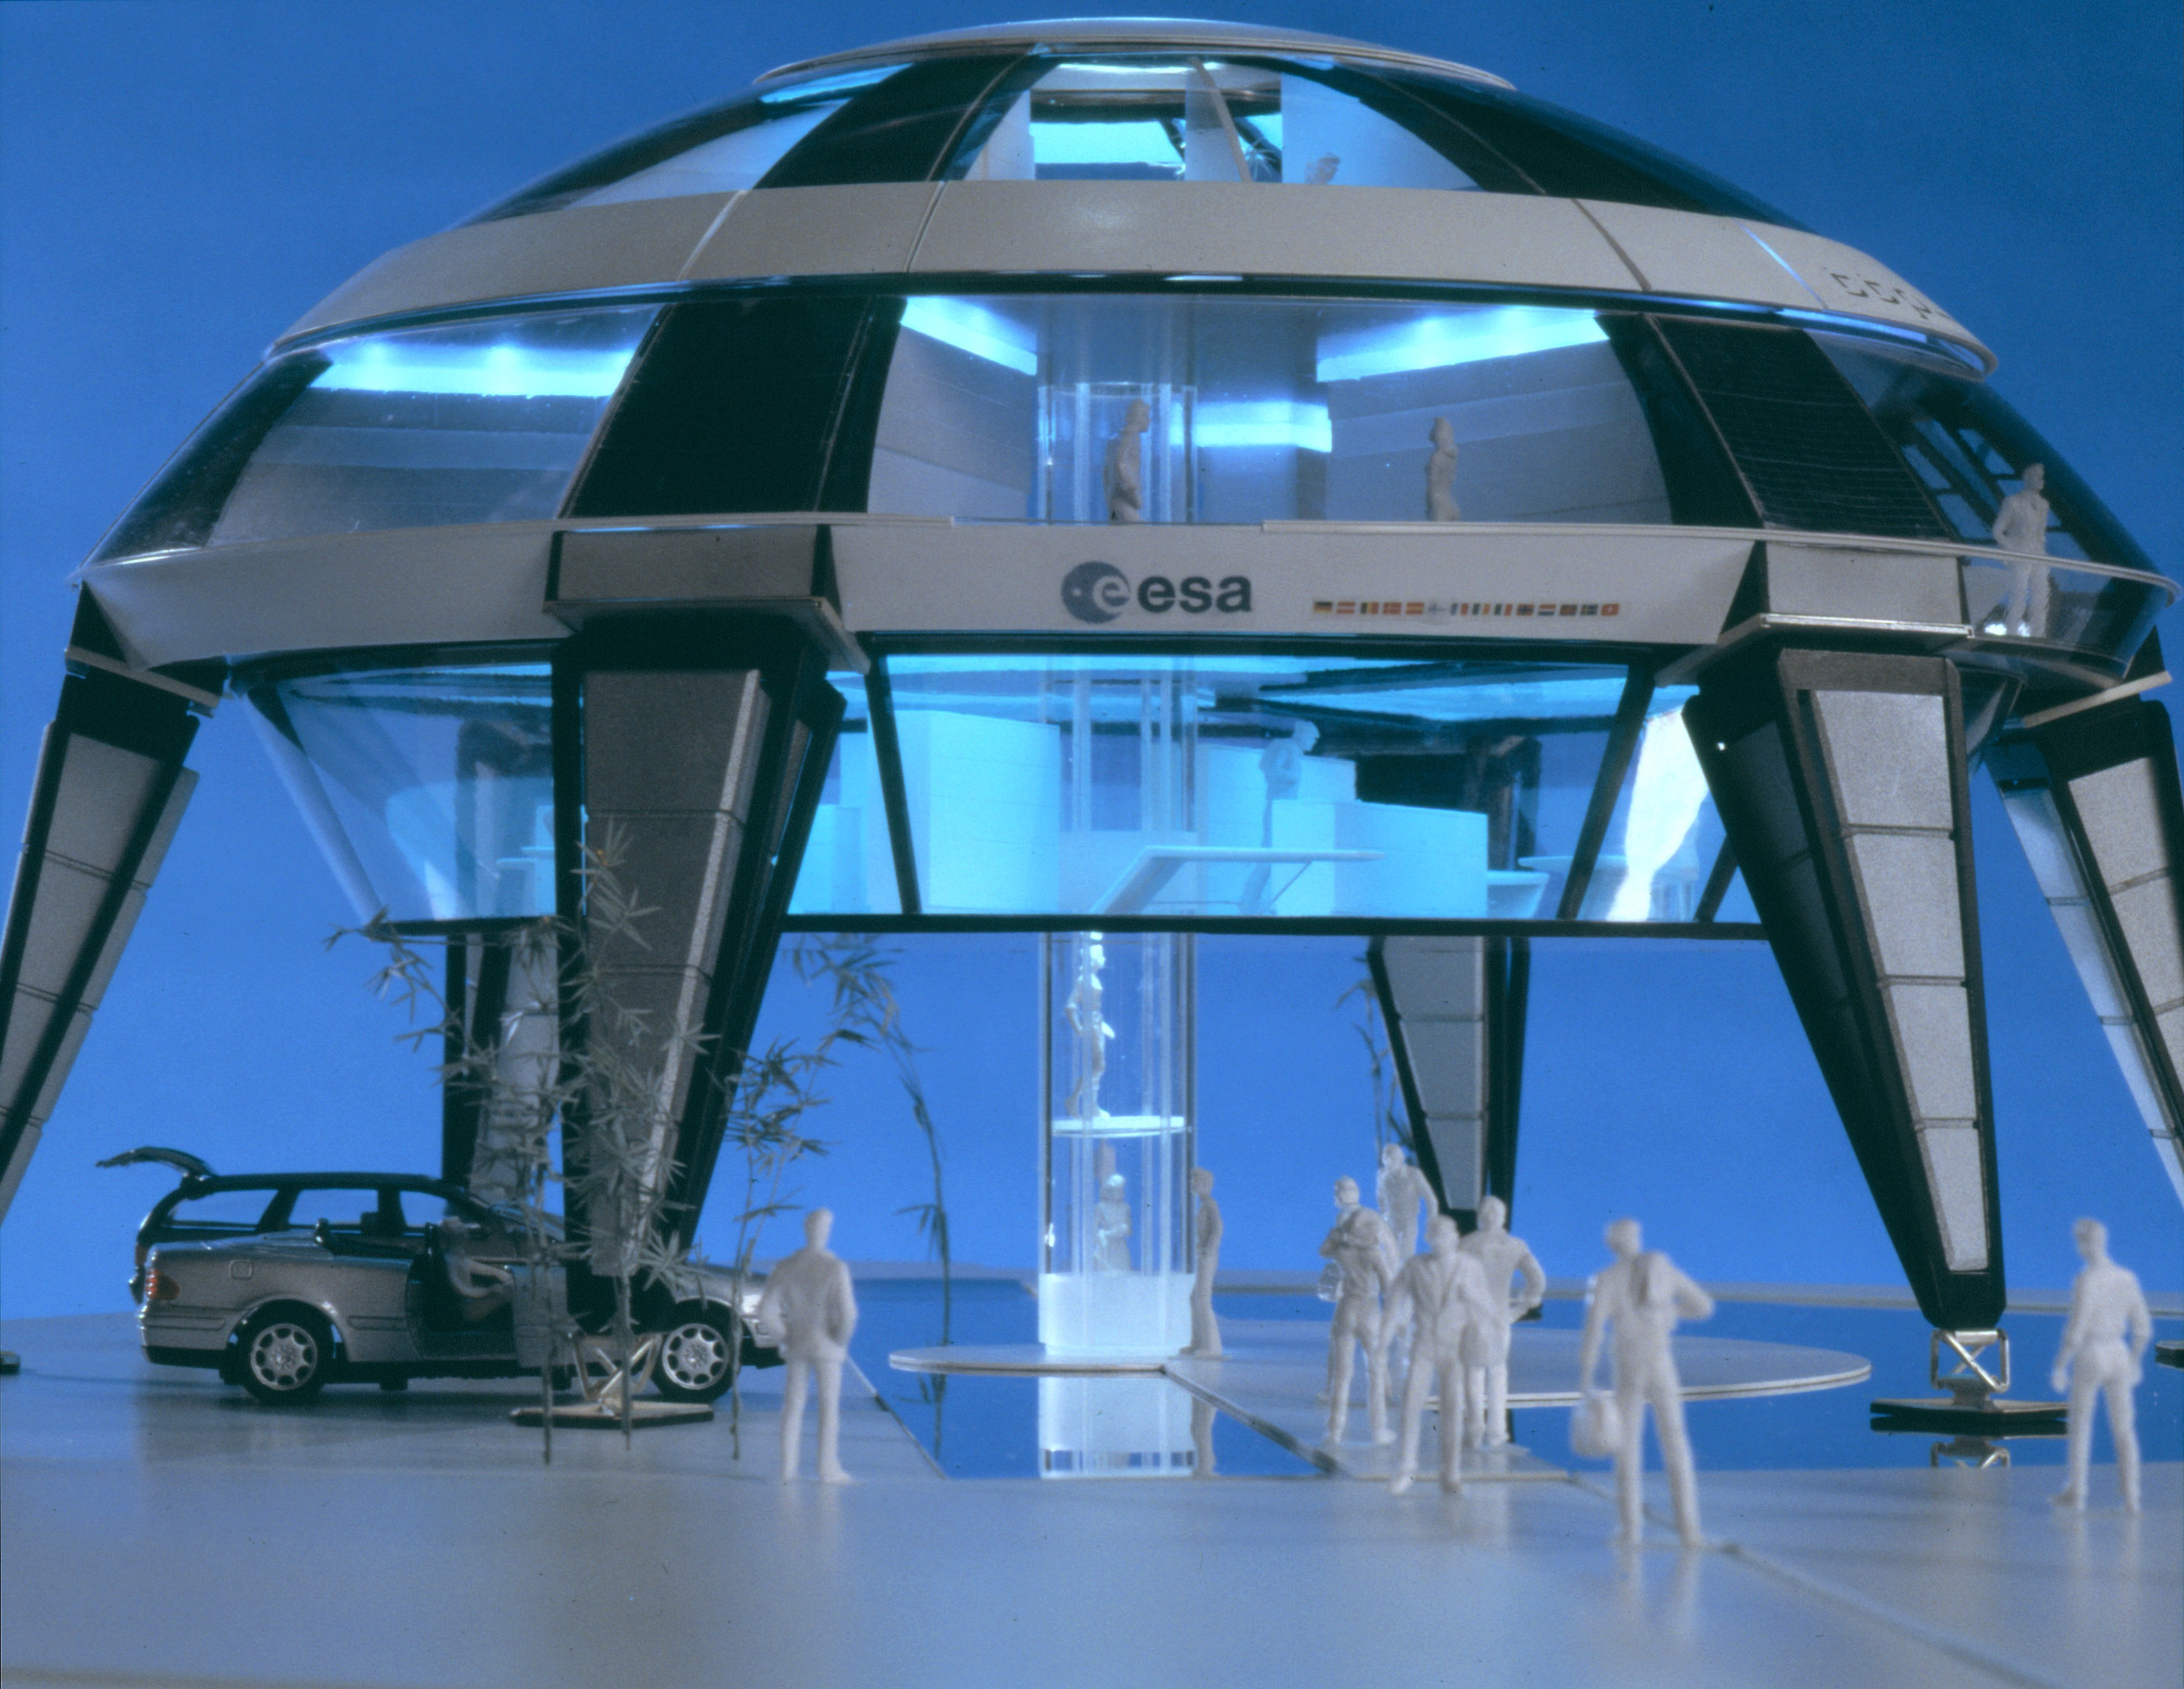 Space house 28 images house floating in space cbell s for House music 2004